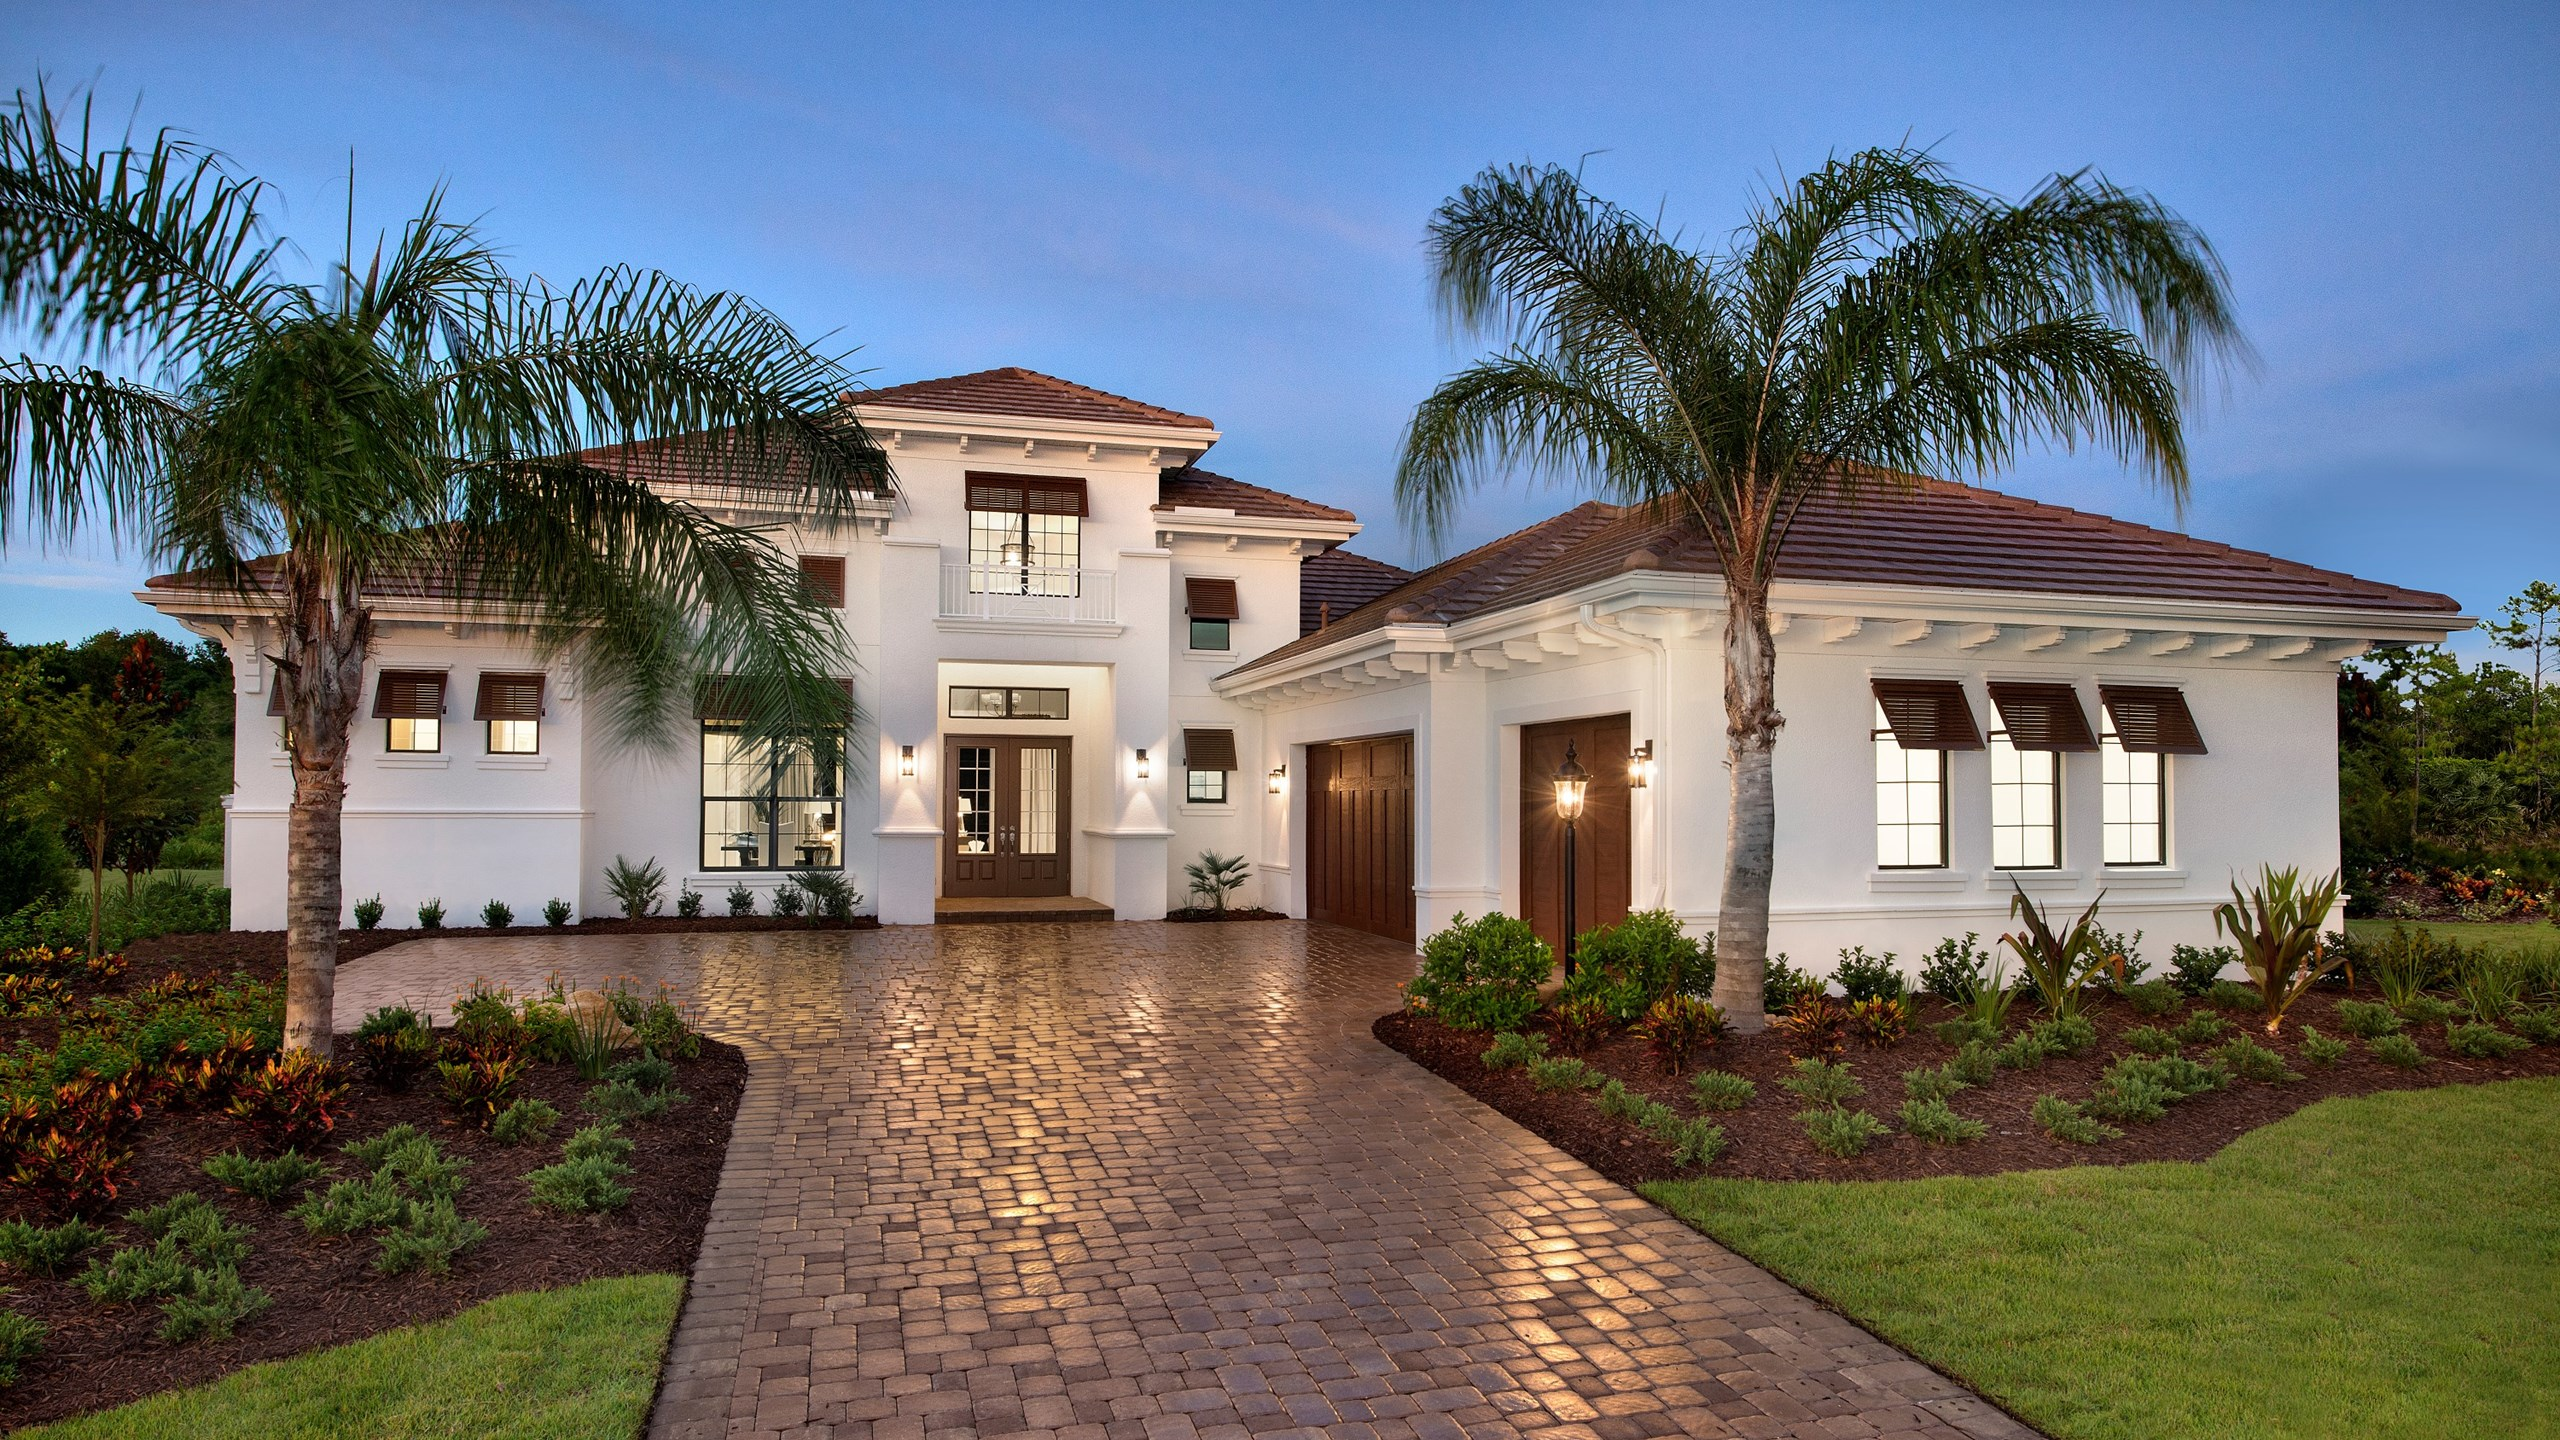 You are currently viewing Free Service for Home Buyers | Lakewood Ranch Florida Real Estate | Lakewood Ranch Realtor | New Homes Communities